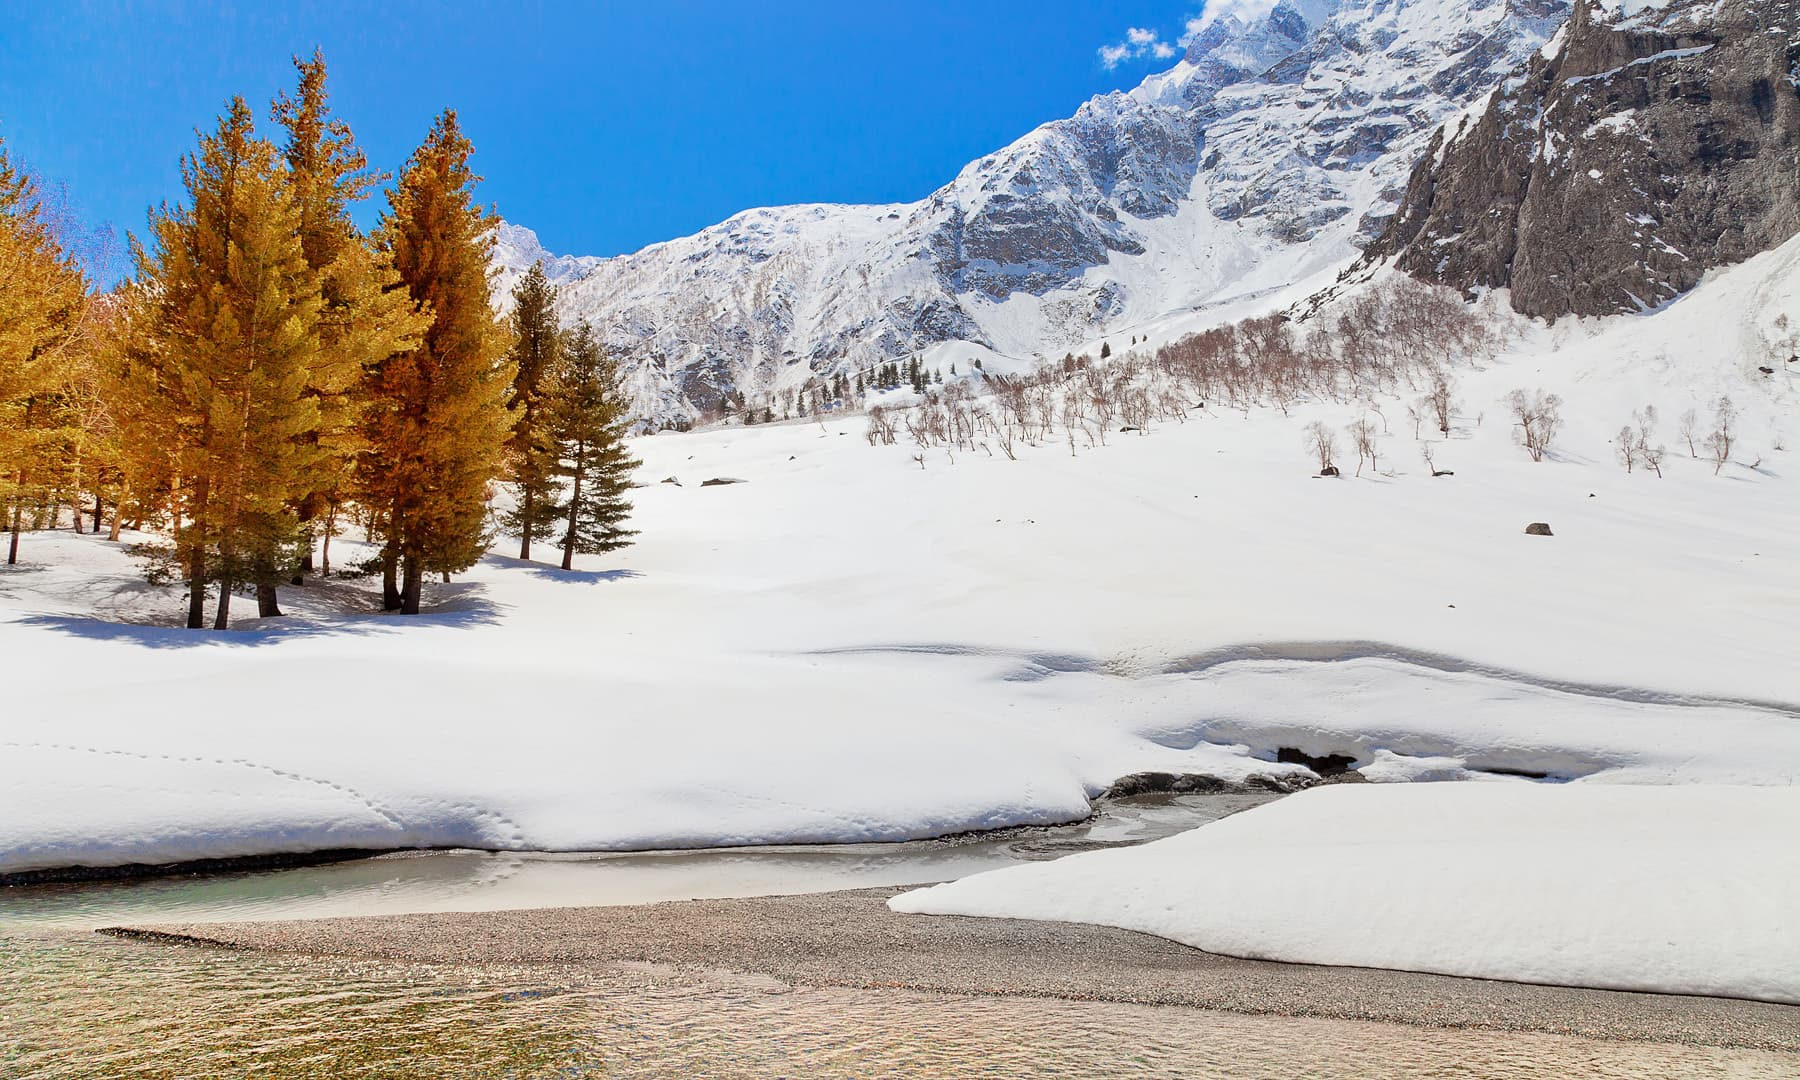 Naltar Valley is the ideal spot to unleash your adventurous spirit